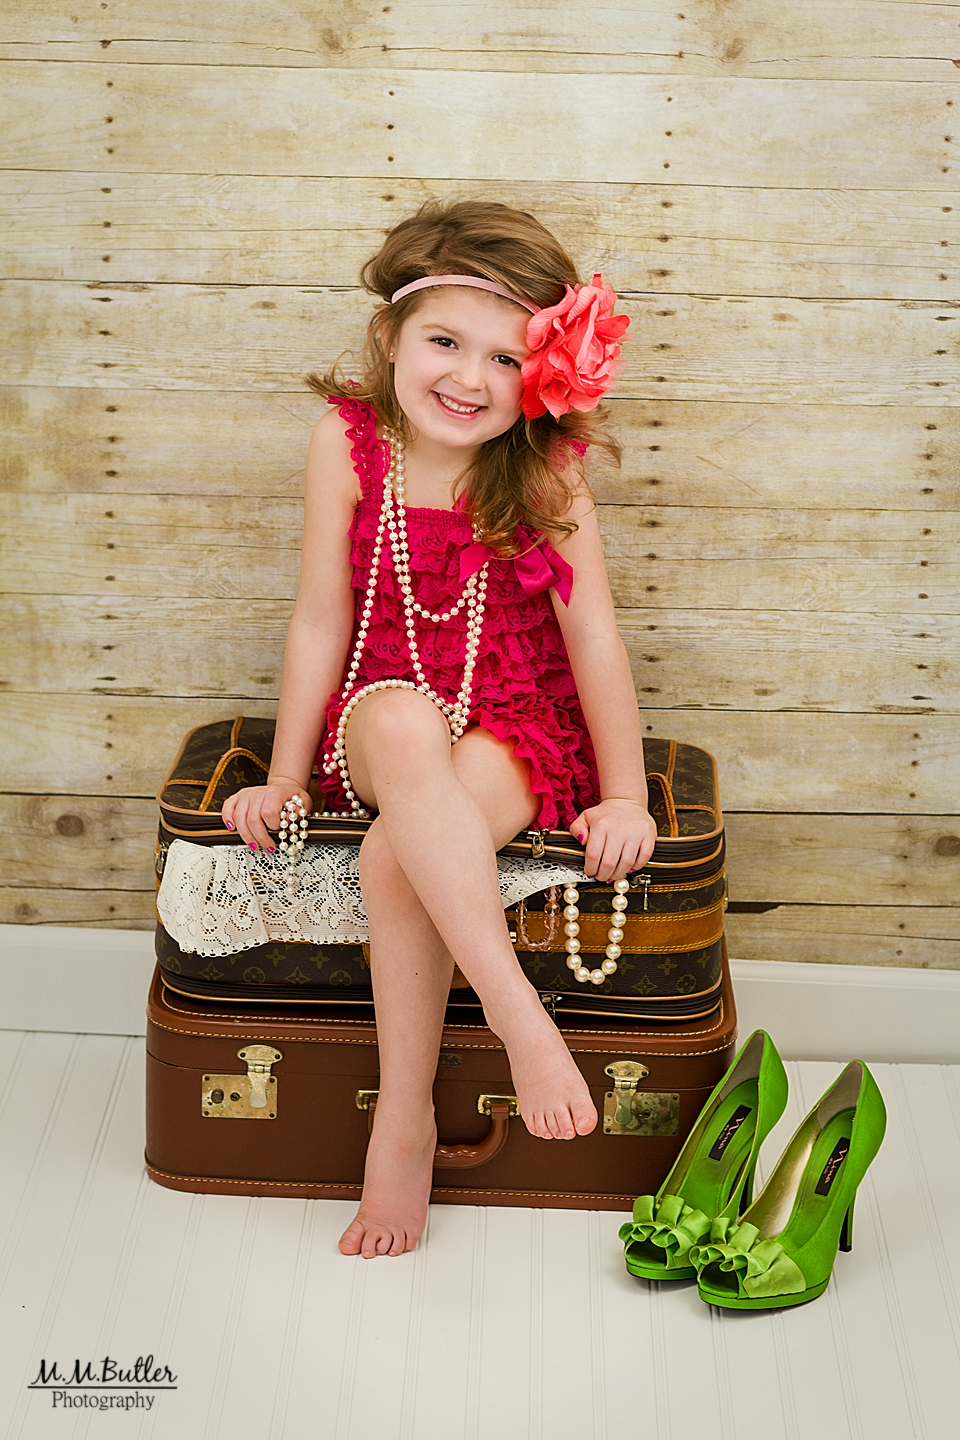 Sophie's Dress-up Photo Shoot